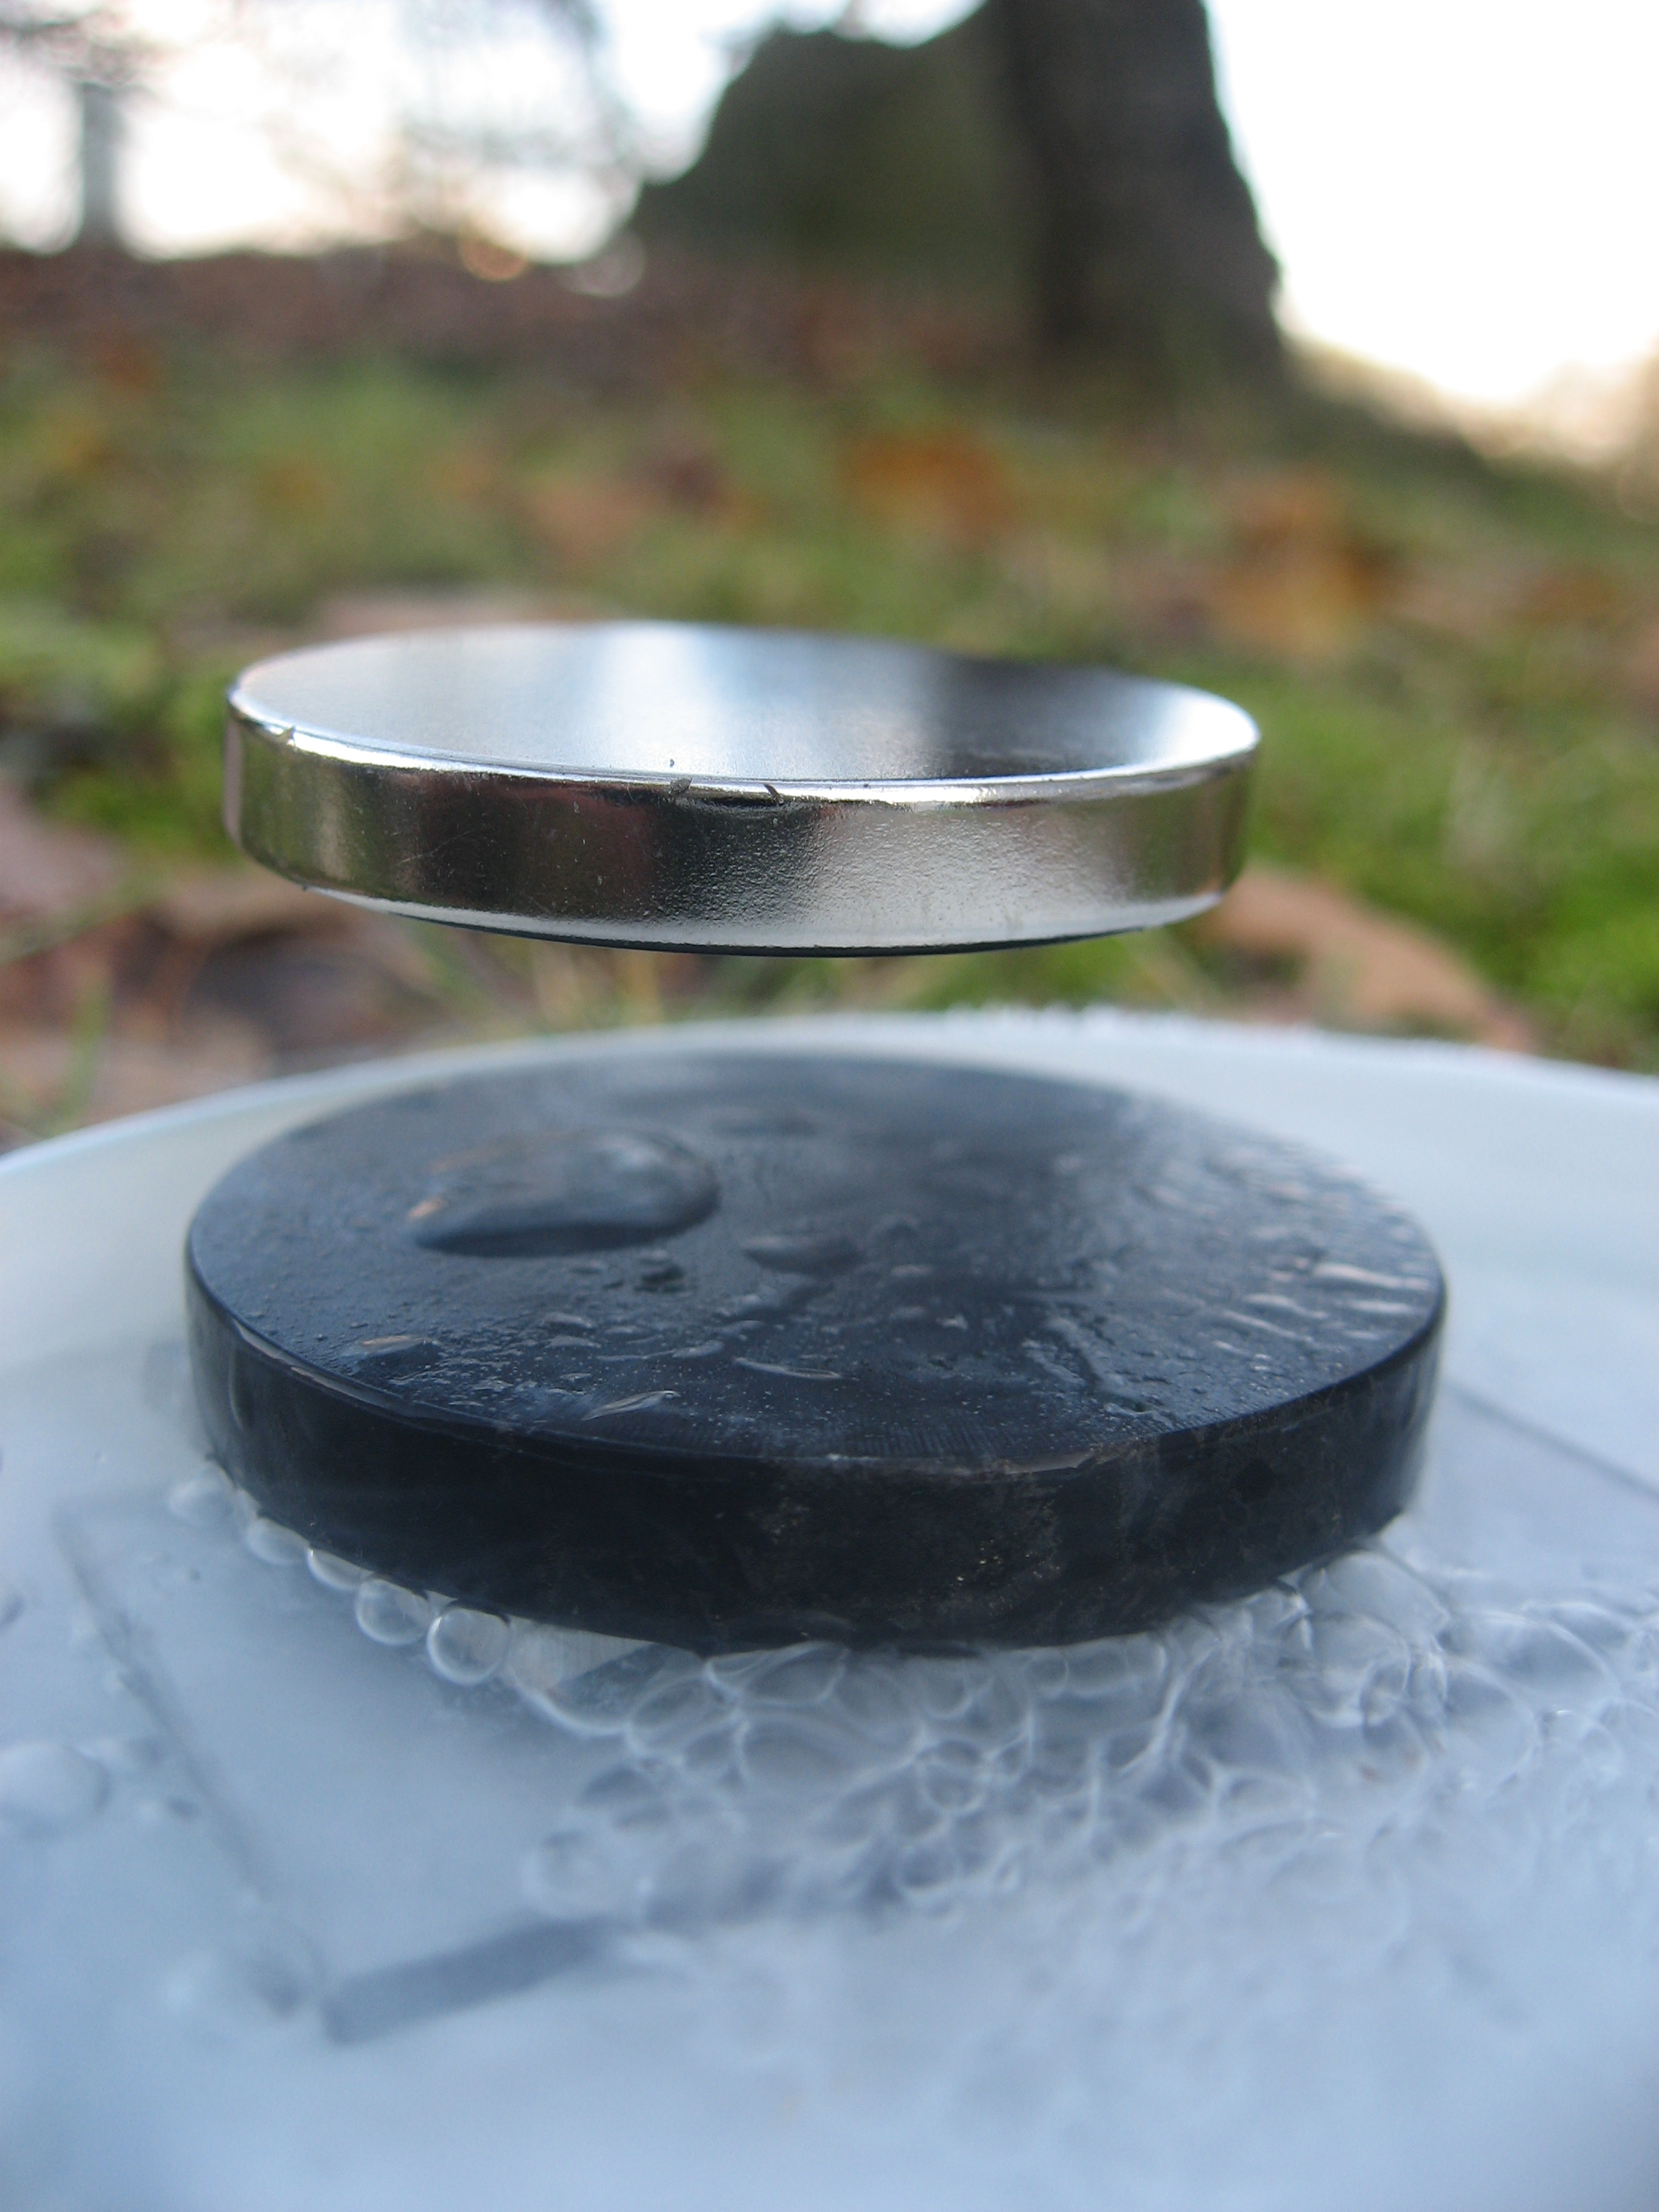 File:Stable Levitation of a magnet on a superconductor.jpg